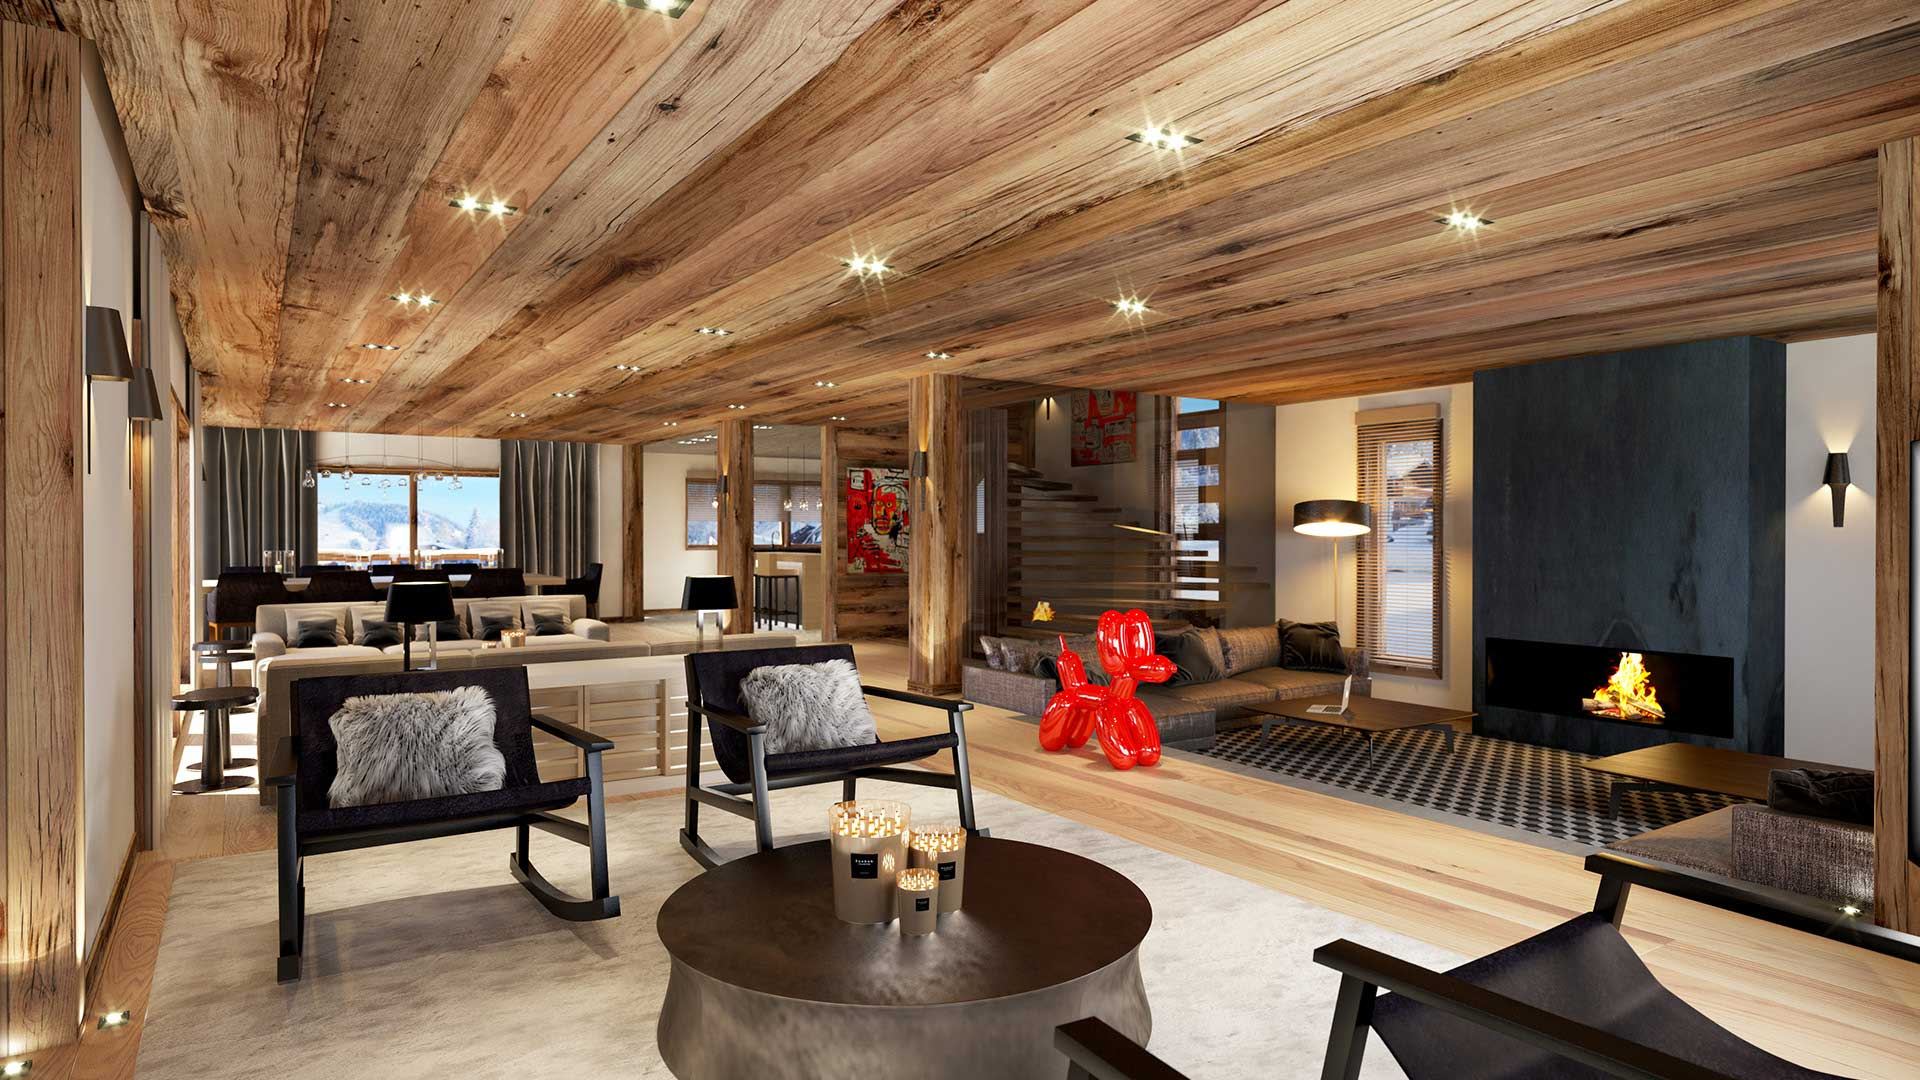 3D Rendering of a living room of a luxurious chalet in Chamonix.